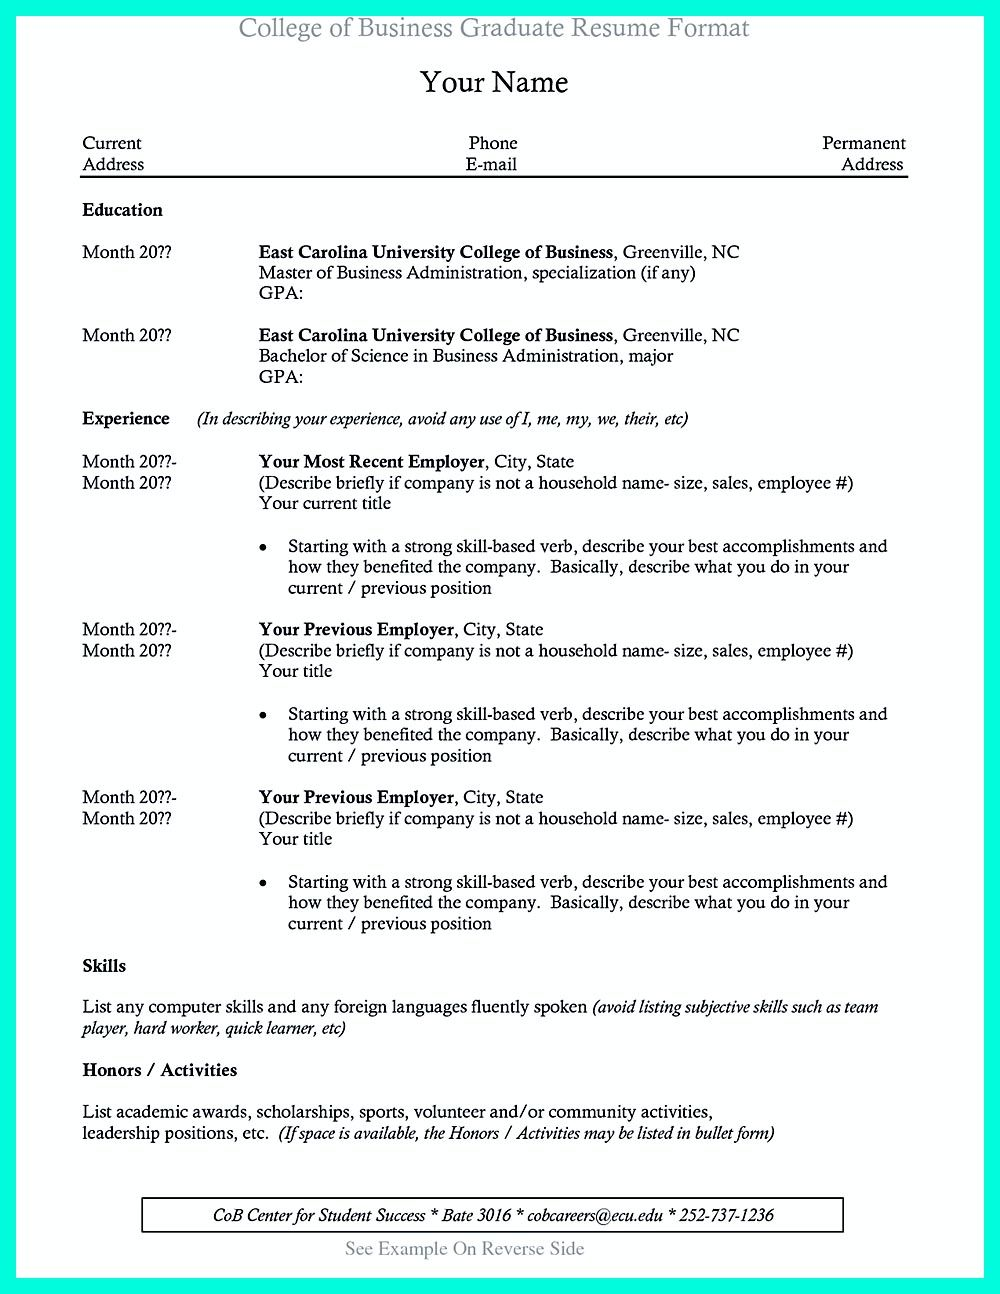 Pin en Resume Sample Template And Format | Pinterest